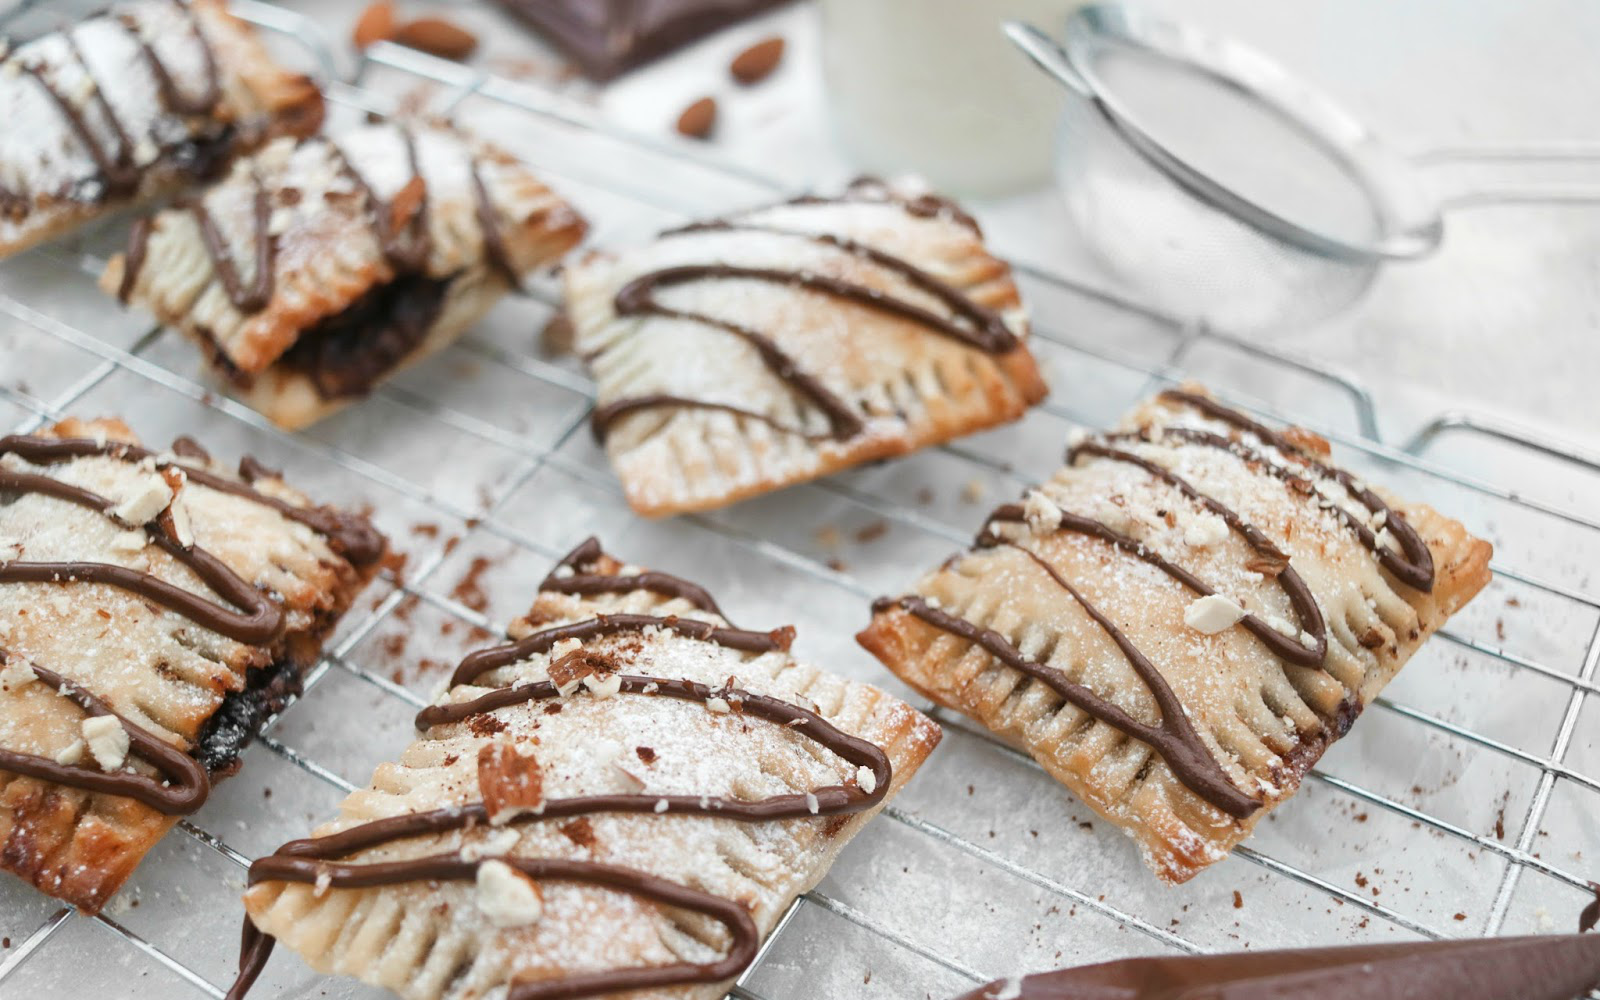 Banana and nutella puff pastries